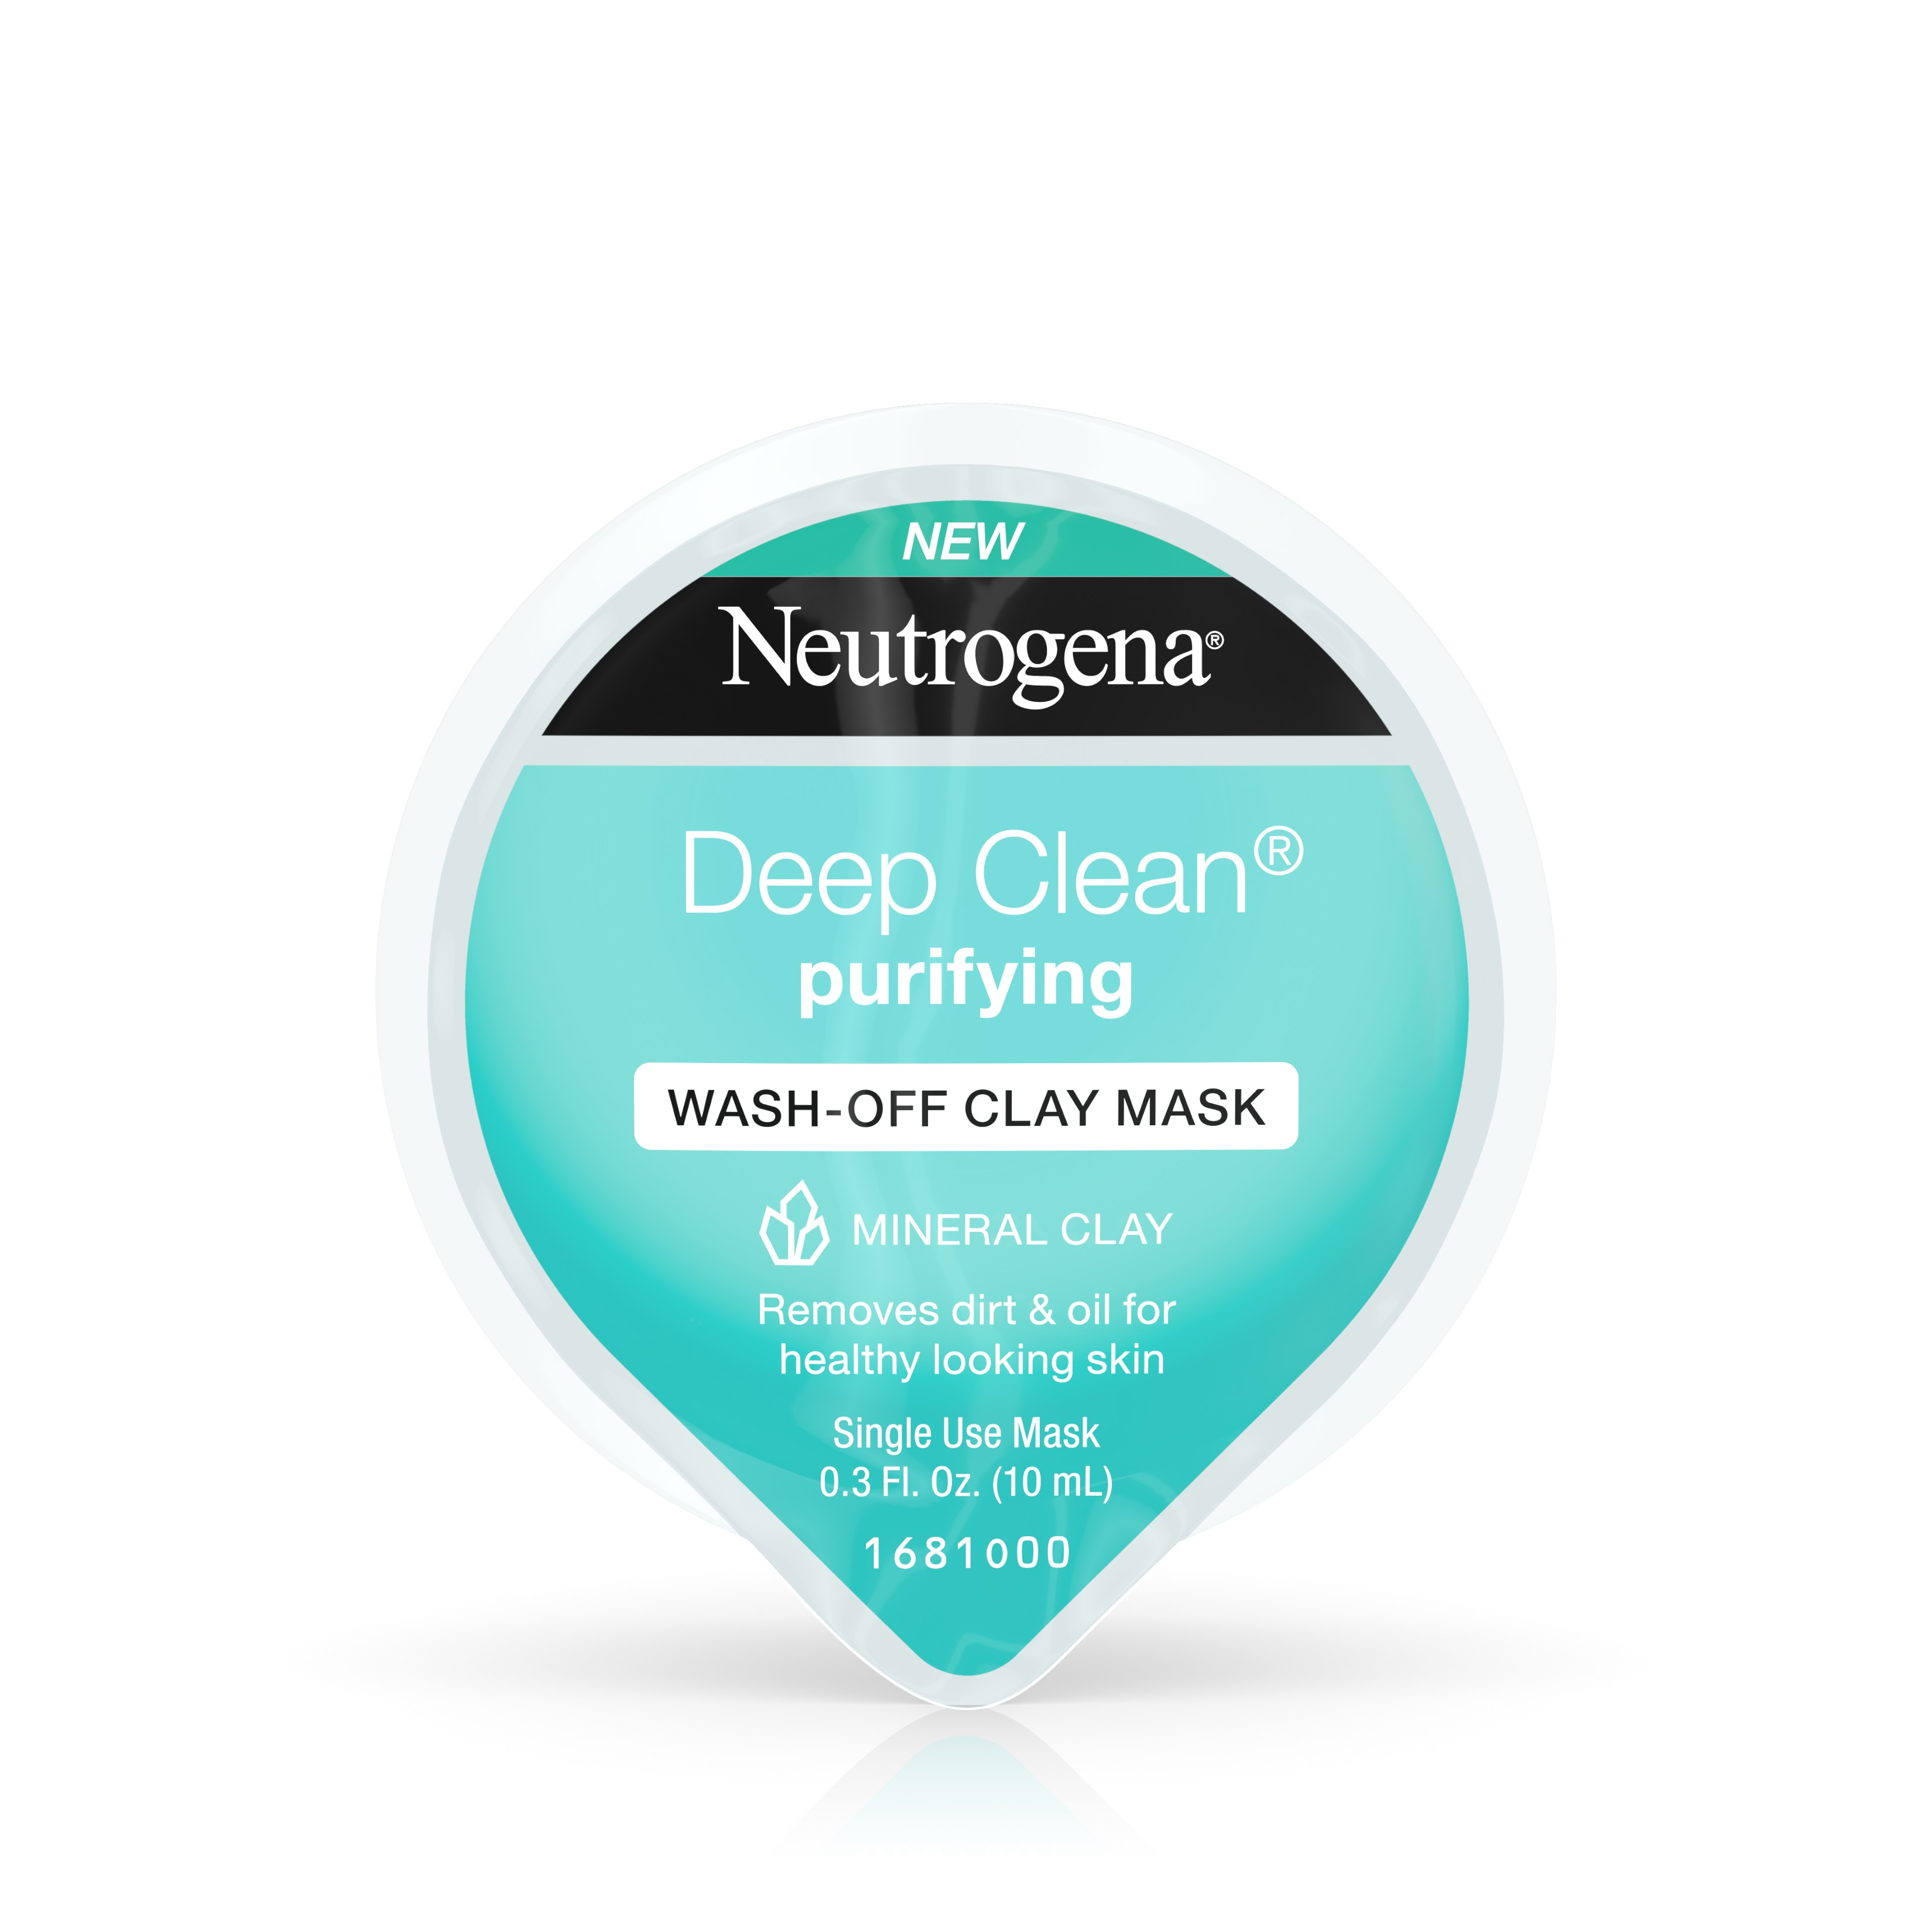 Neutrogena Deep Clean Purifying Wash-Off Clay Face Mask, 0.3 fl. oz